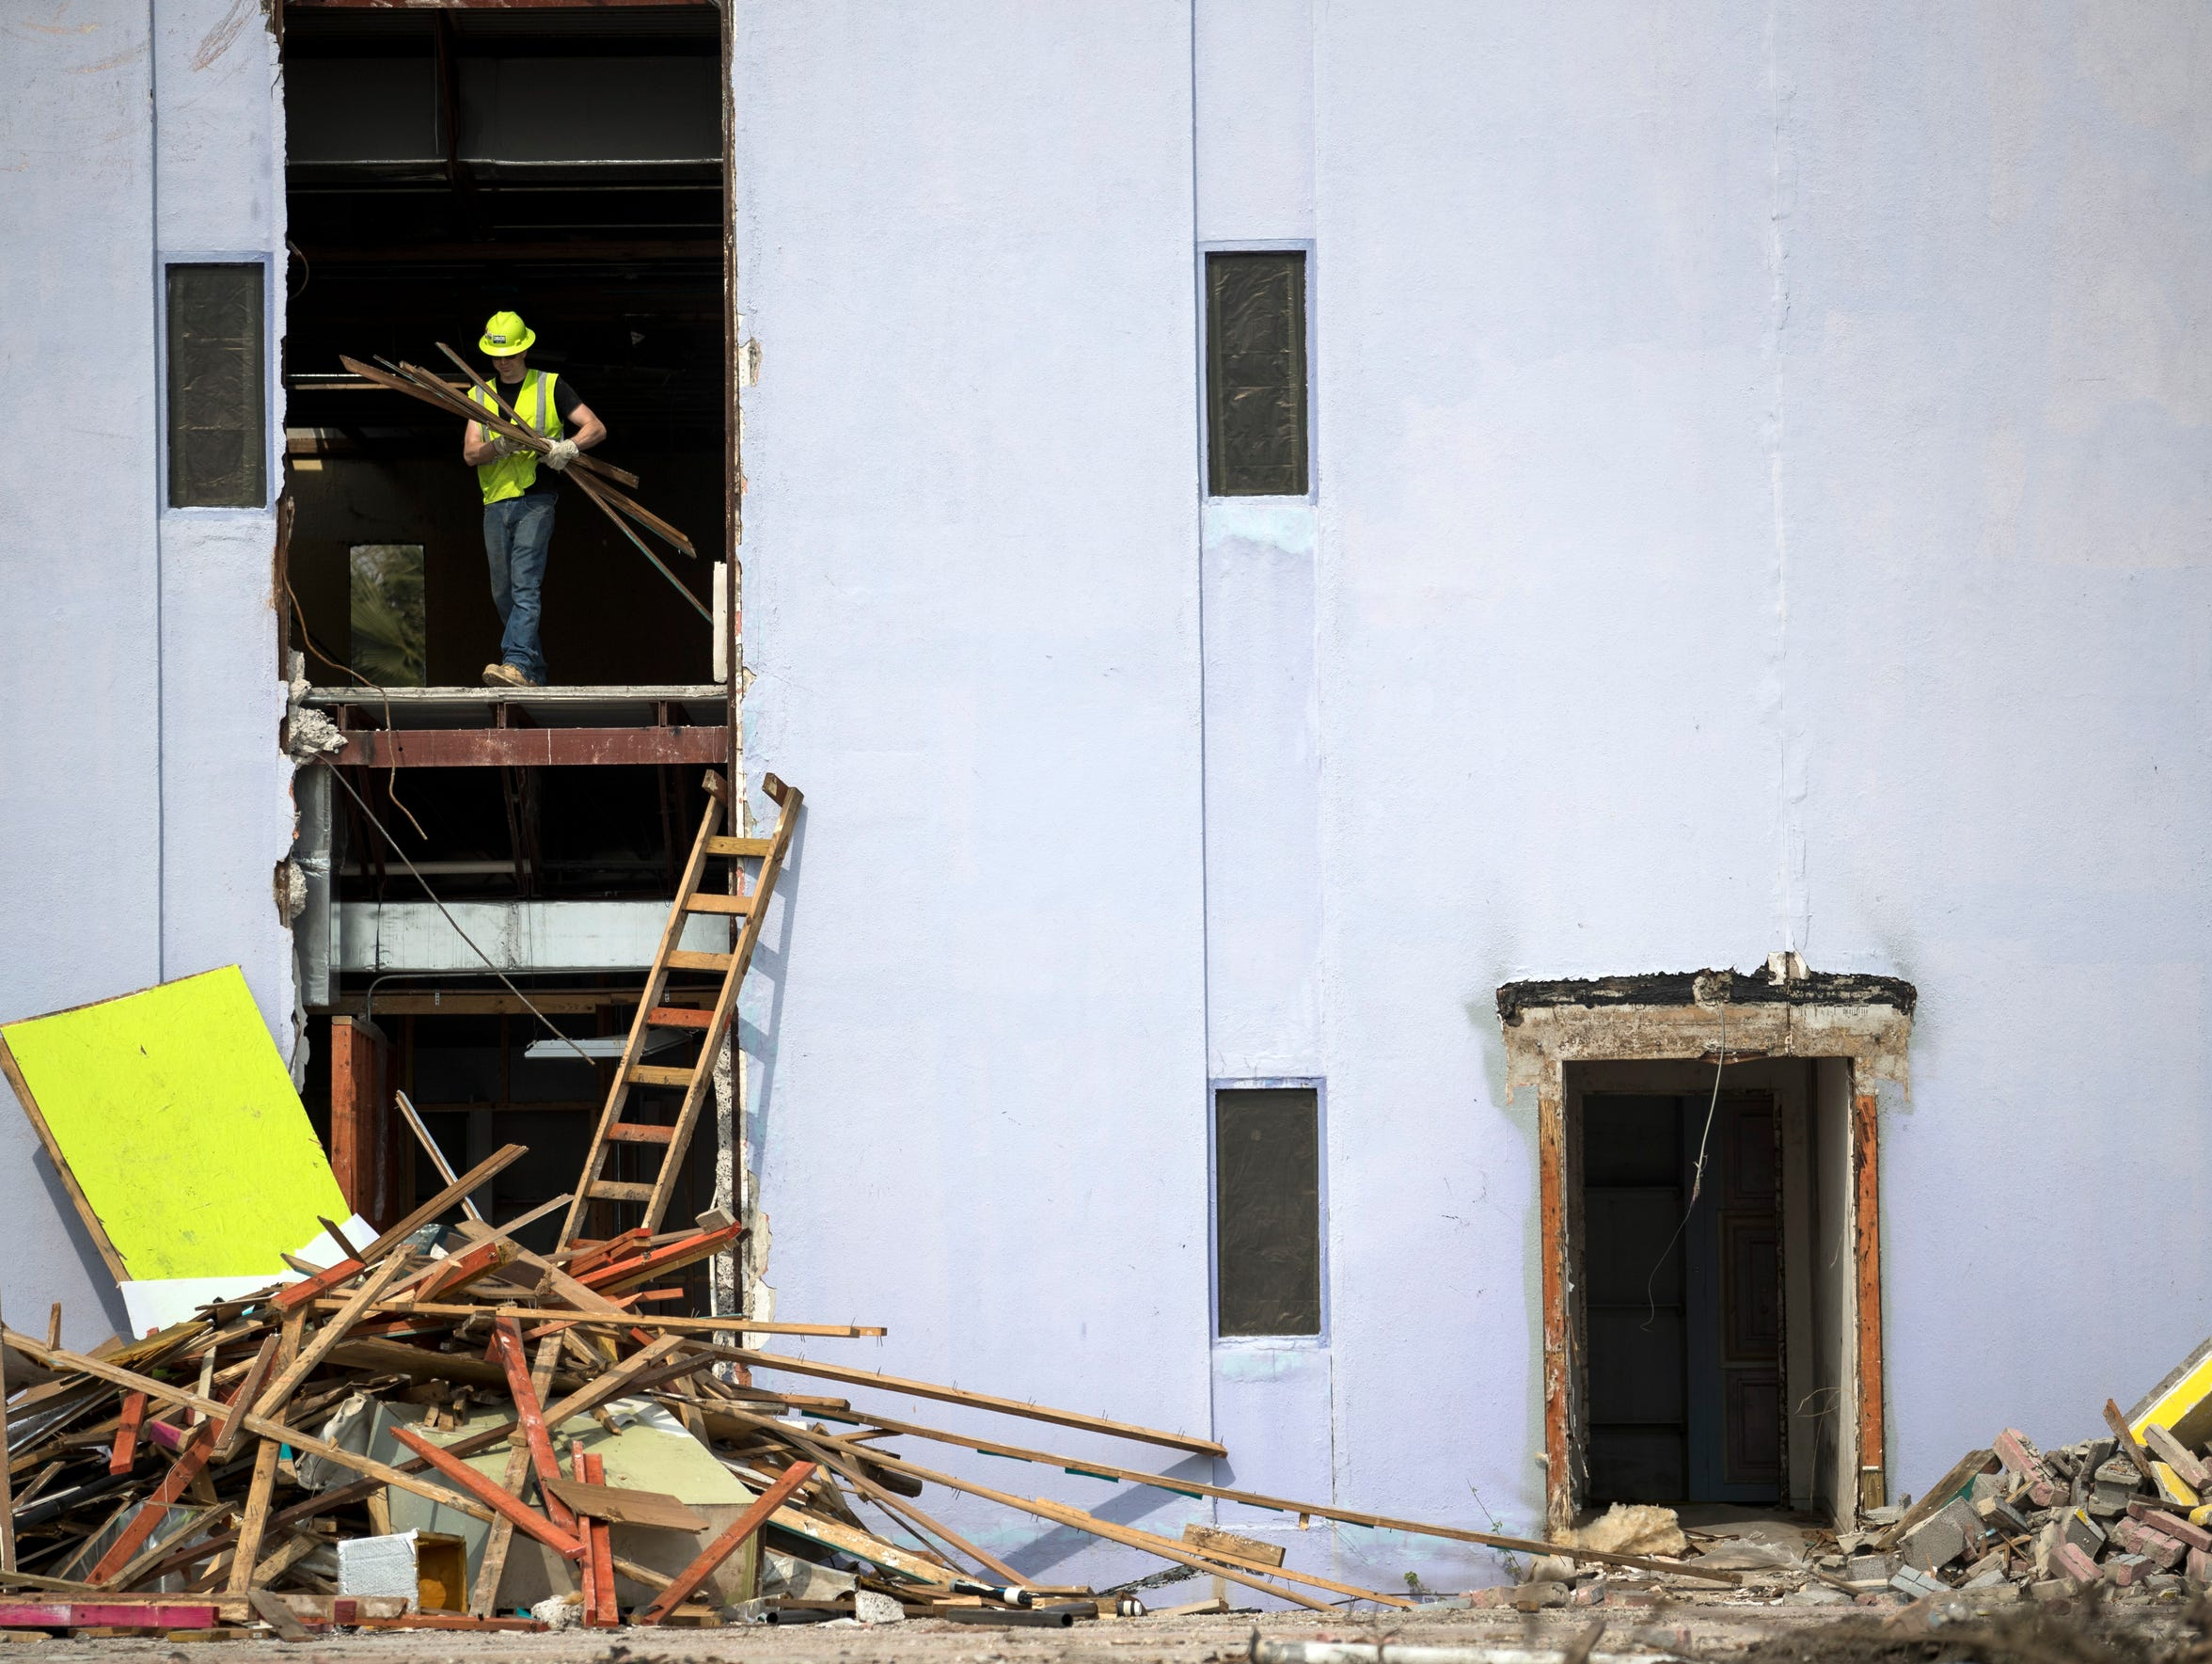 Contractors work to demolish the a building in downtown